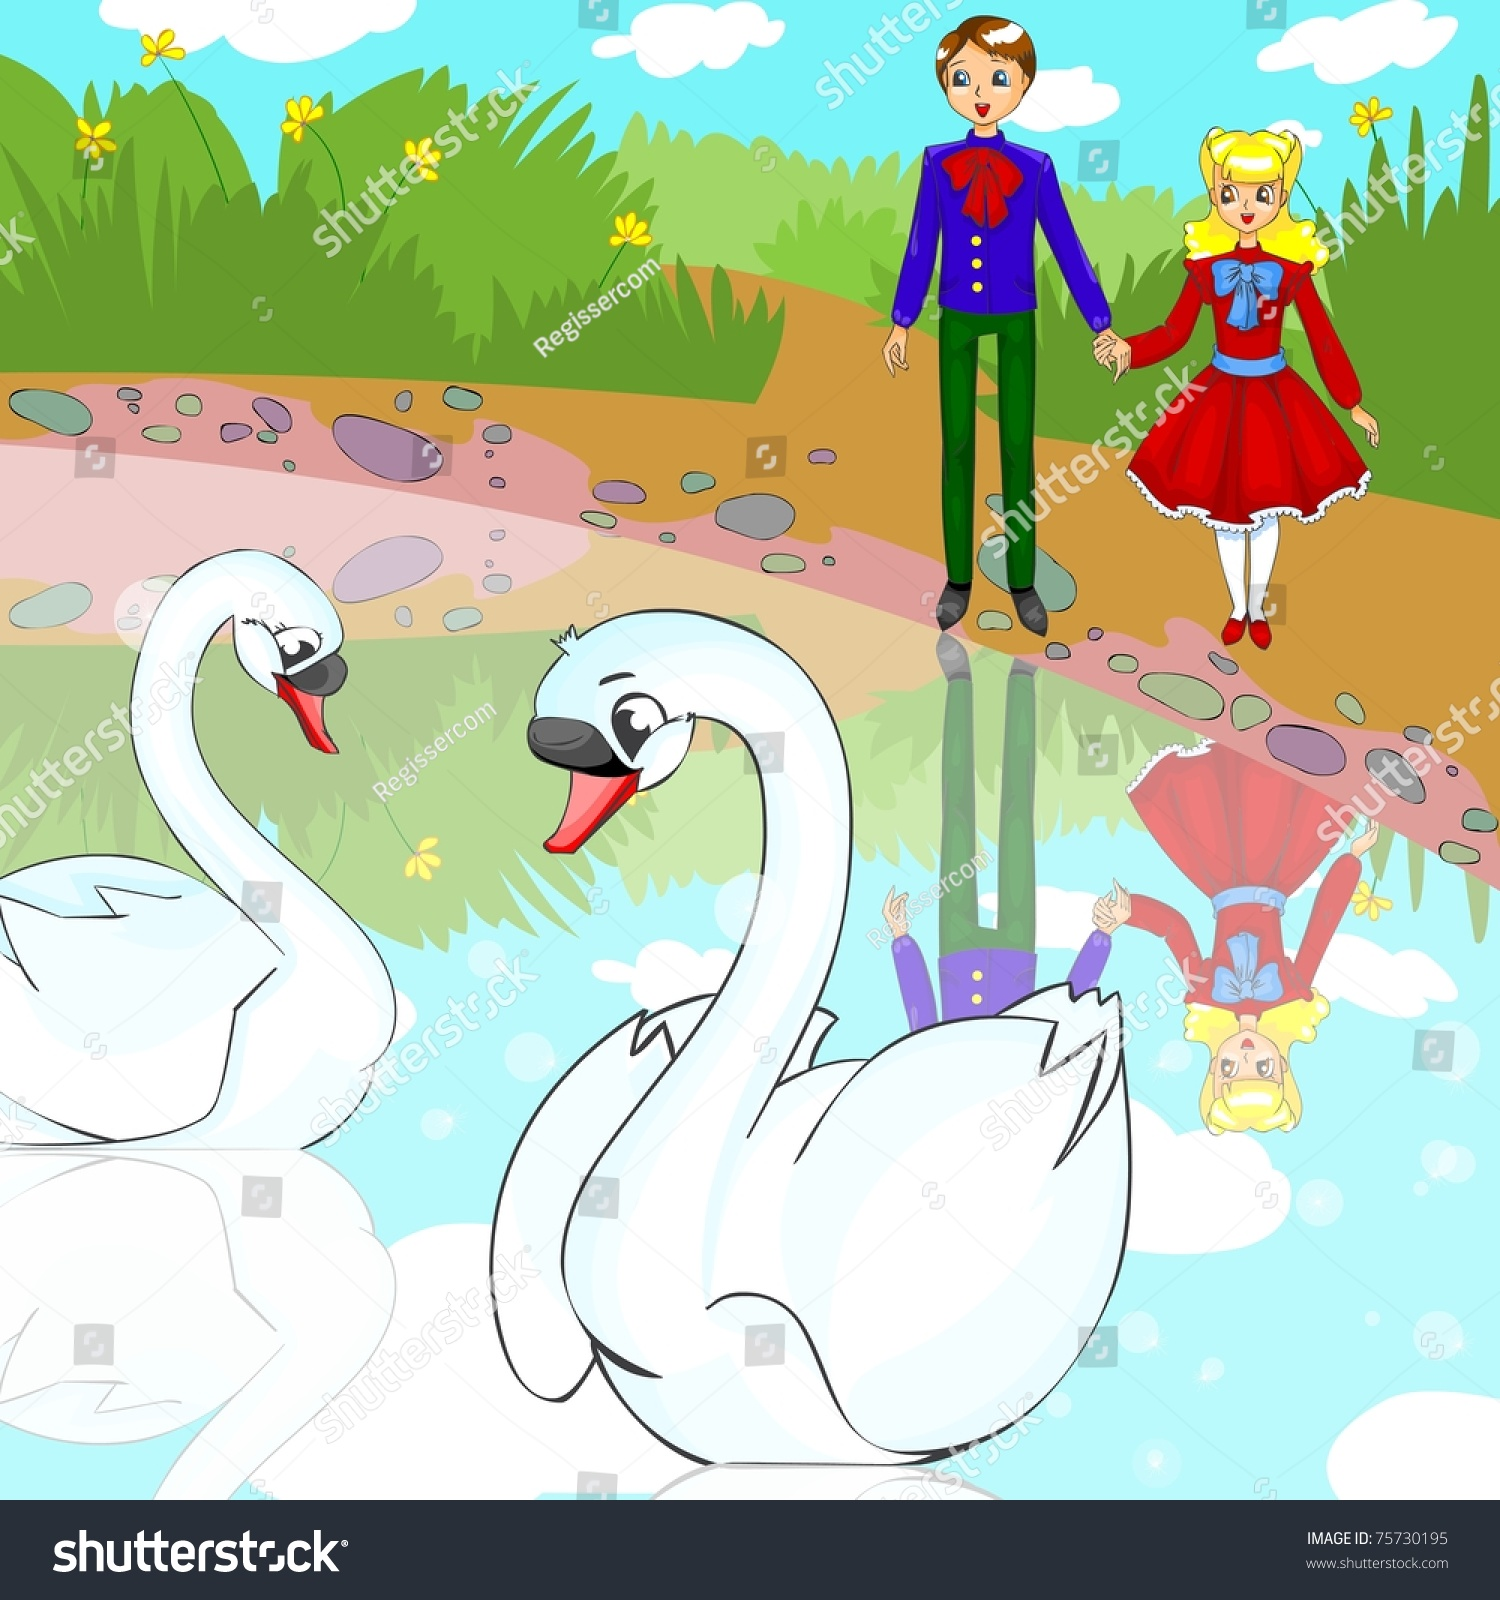 illustration fairytale ugly duckling people look stock